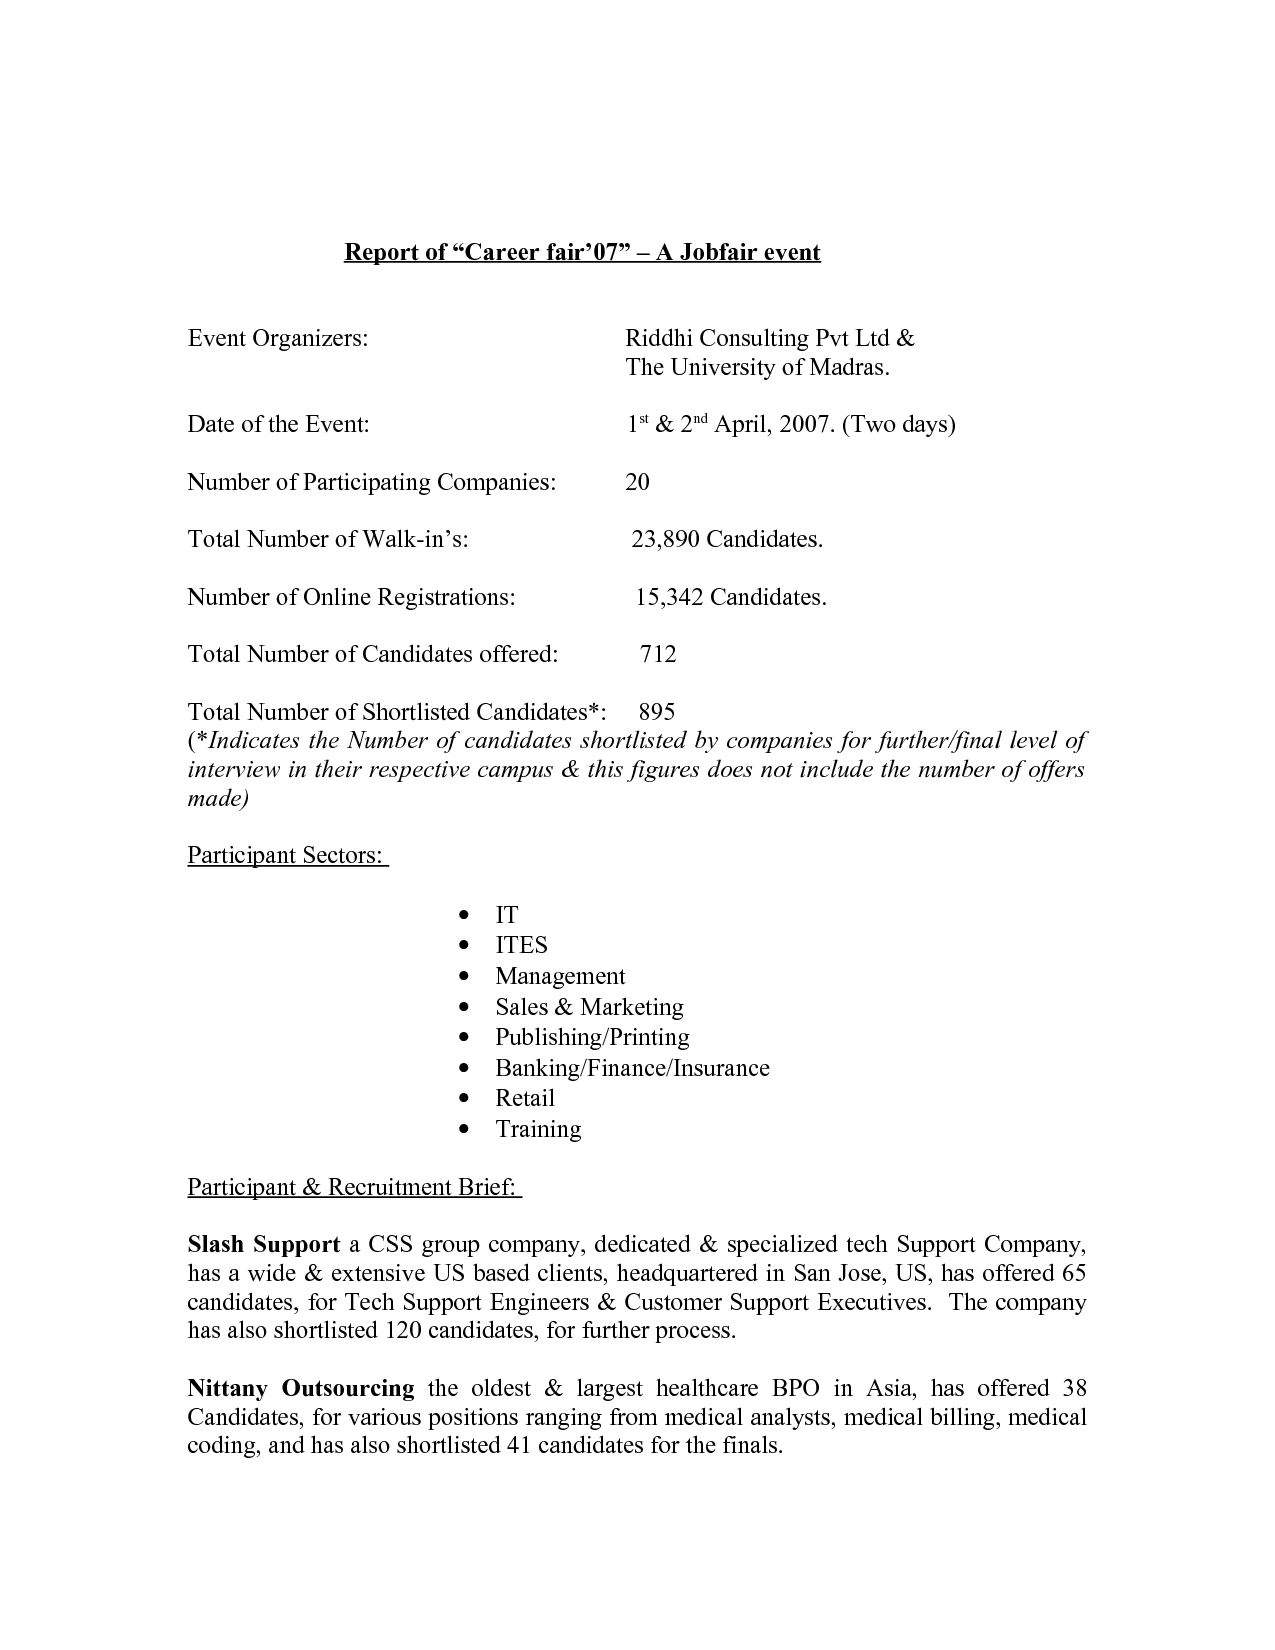 Resume Format Microsoft Word Custom Resume Format For Freshers Free Download Resume Format For Inspiration Design